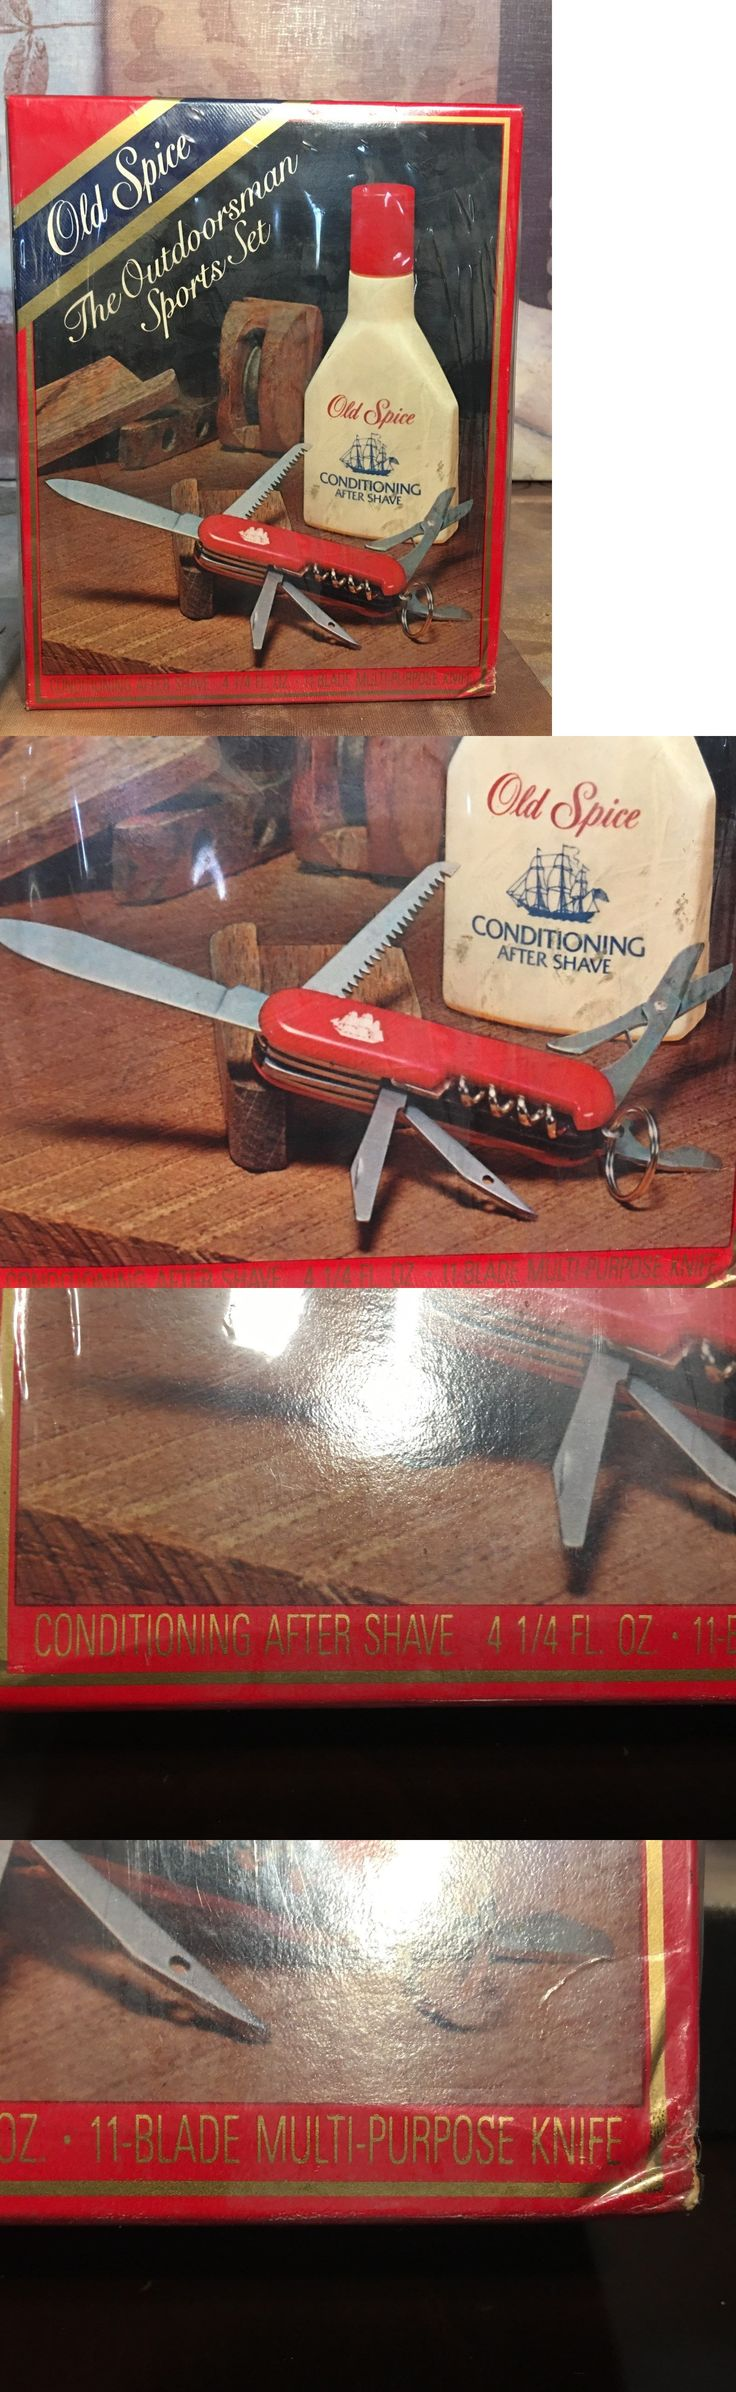 Aftershave and Pre-Shave: Vintage Old Spice Outdoorsman Sports Set Shulton 11 Blade Knife Made In Japan Jd -> BUY IT NOW ONLY: $64.95 on eBay!